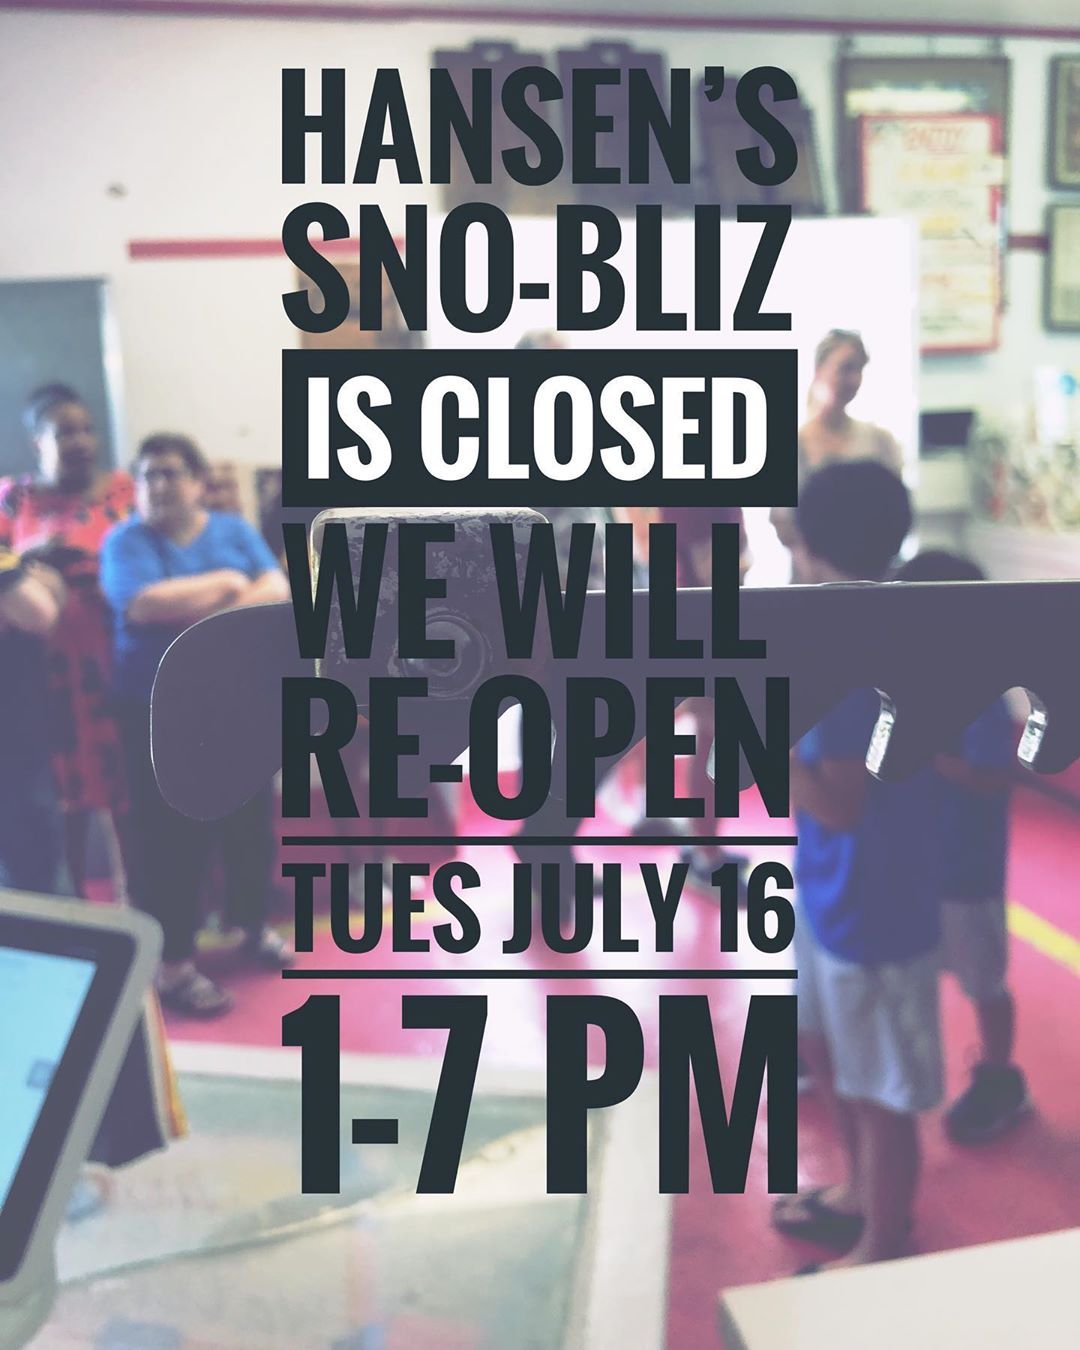 Back open Tuesday 7/16! We're all safe and sound and can't wait to be back to doing what we do best for all y'all very very soon!